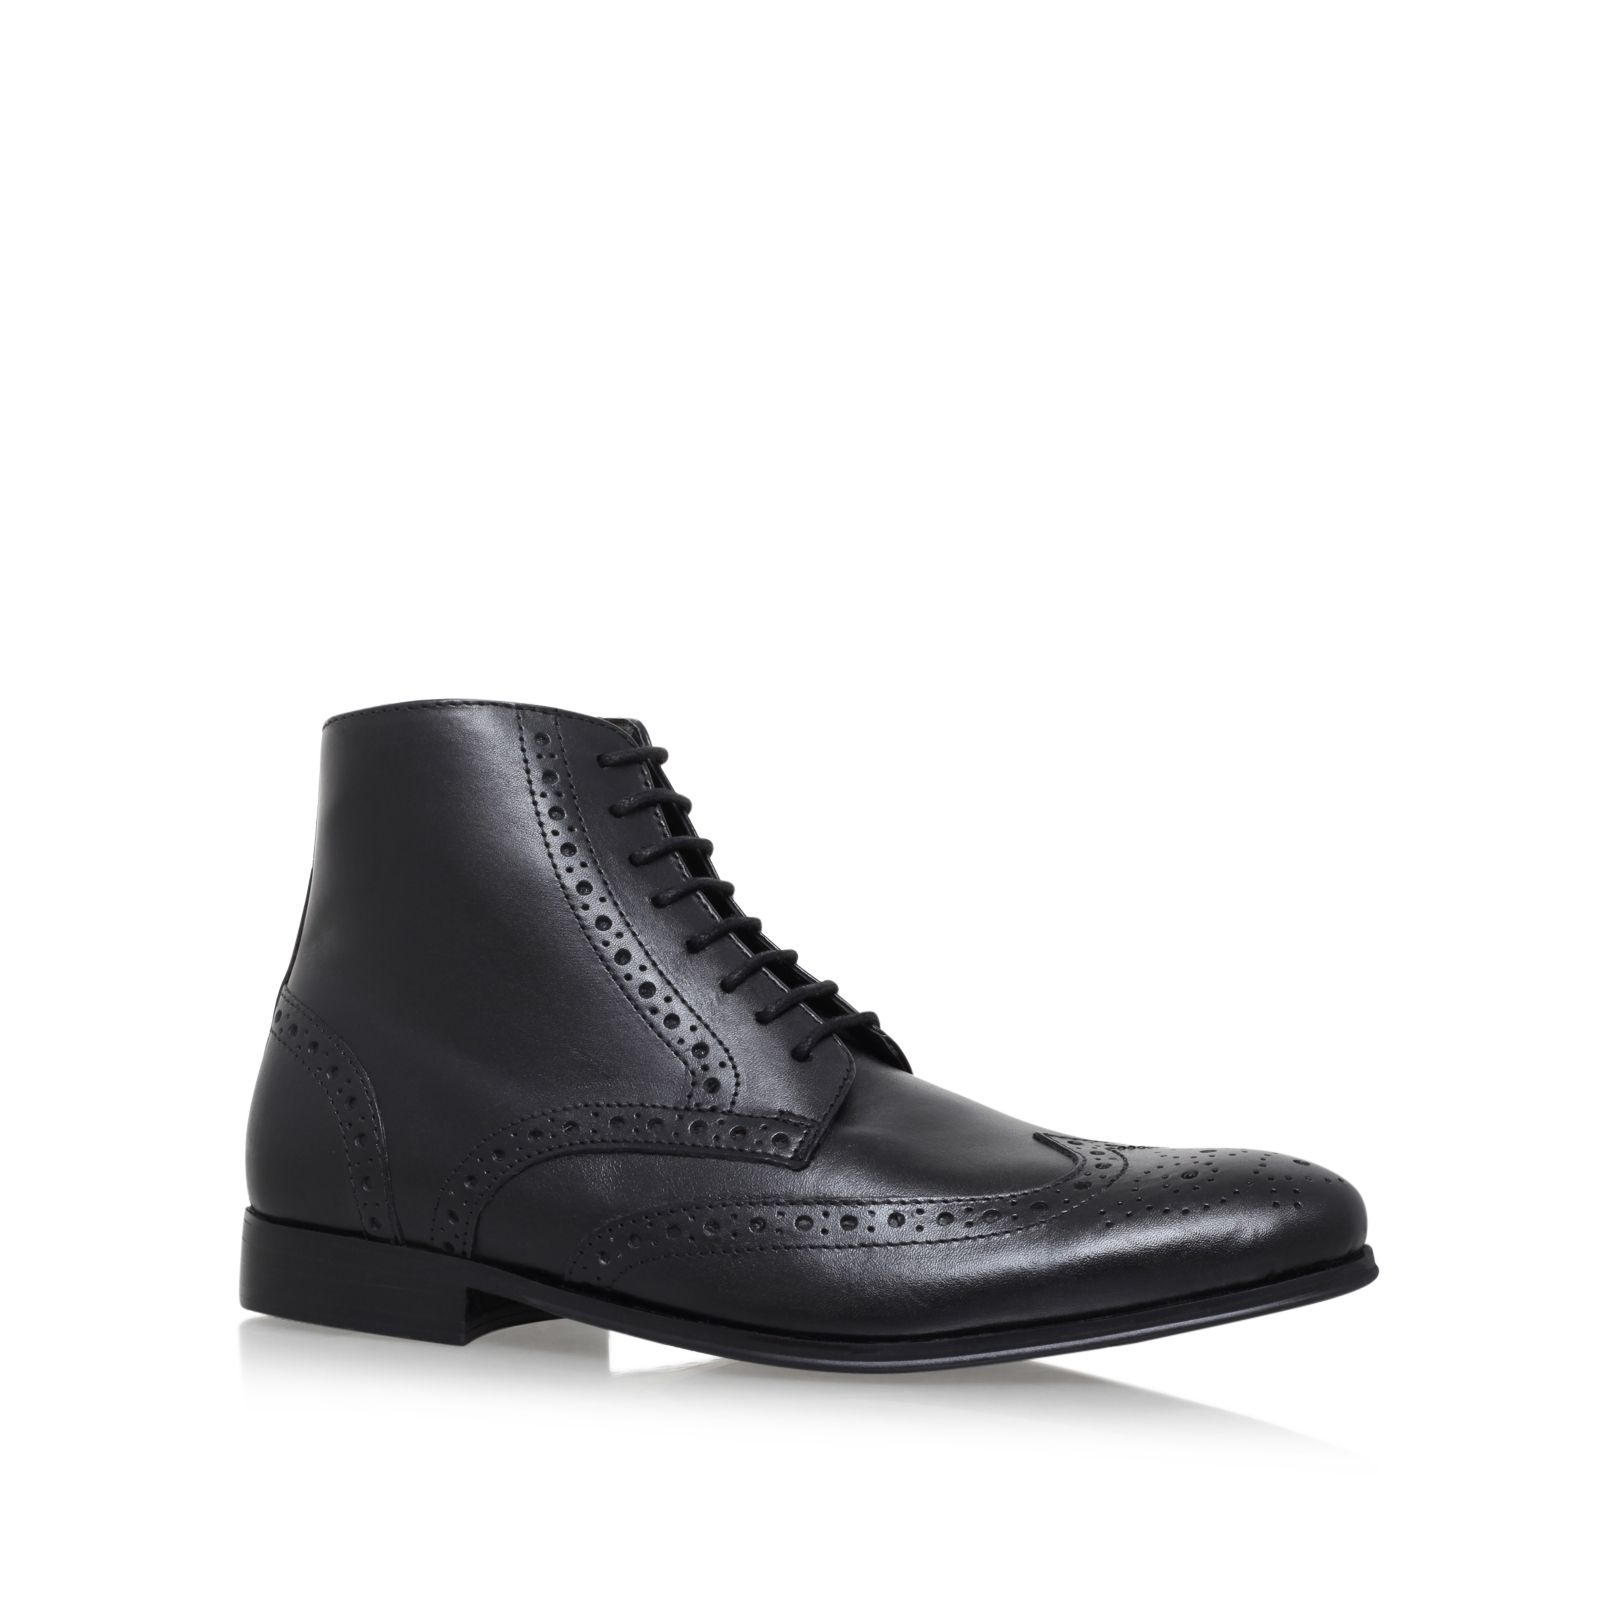 KG Hove Lace Up Ankle Boots Black